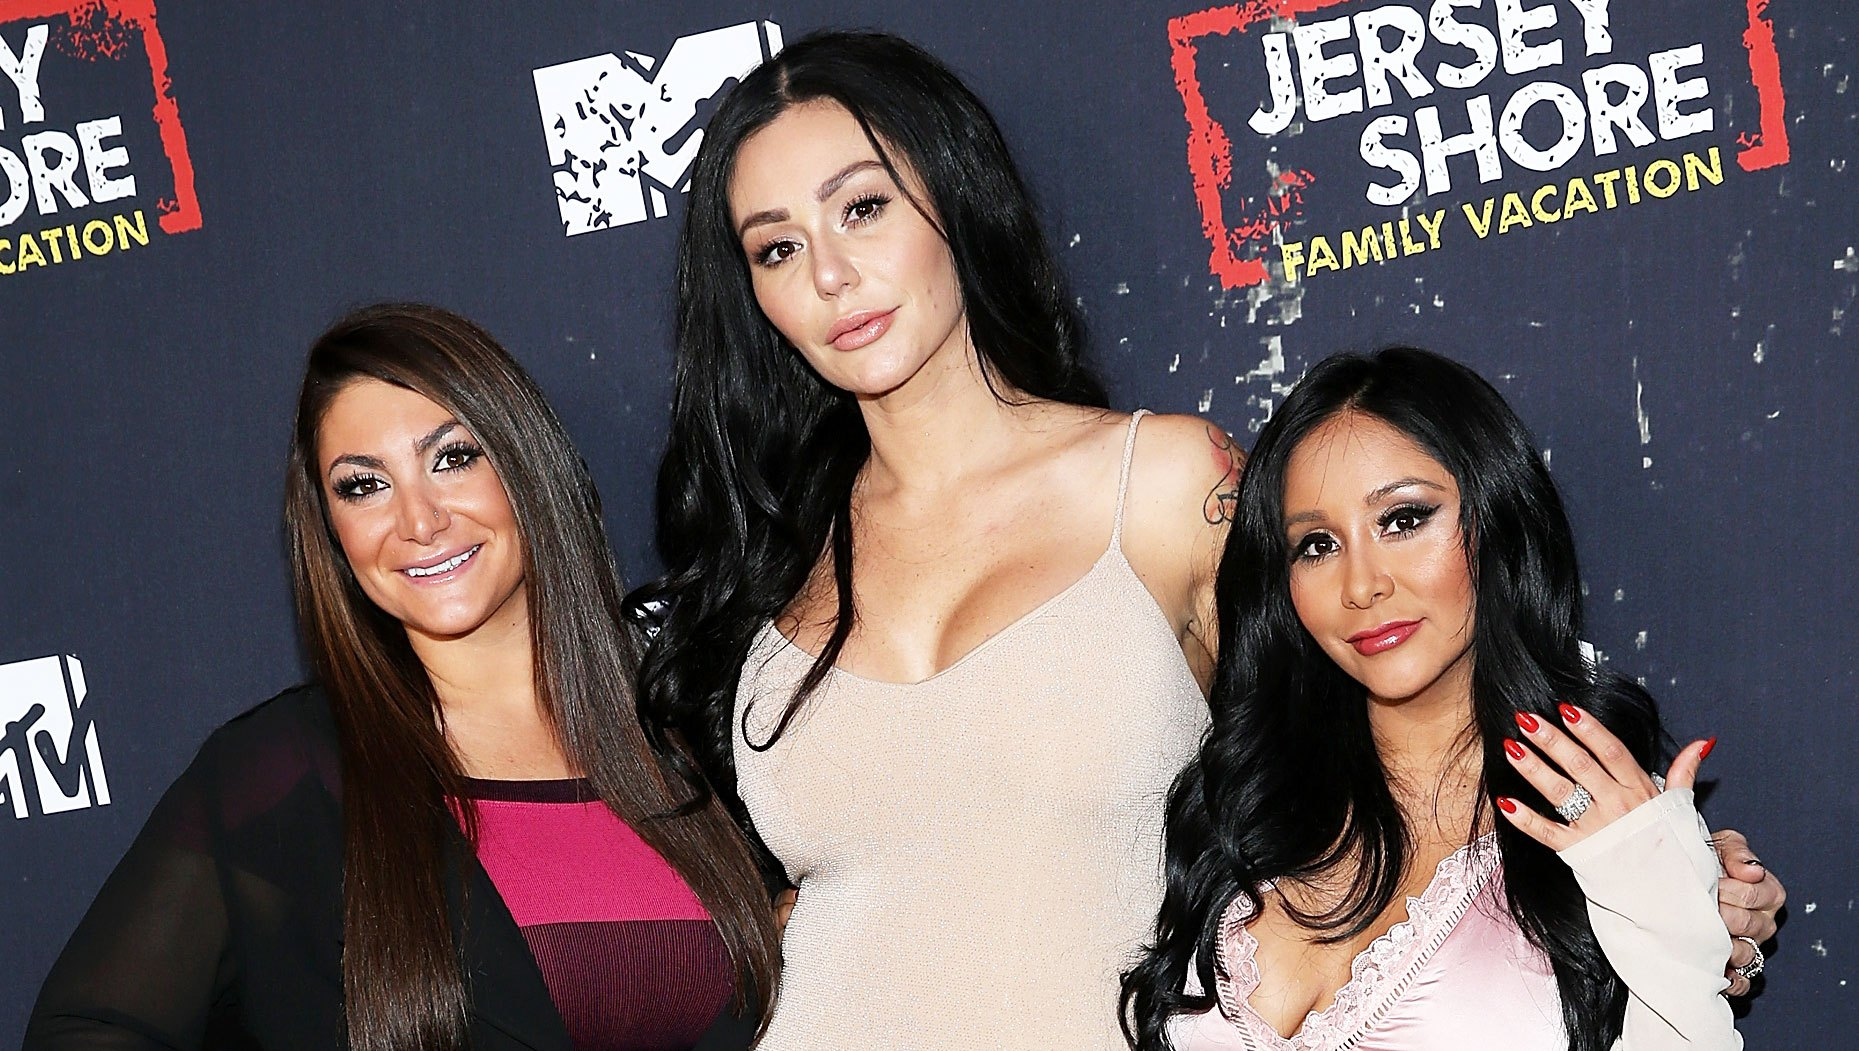 Nicole 'Snooki' Polizzi's Kids Hang Out With Costars' Little Ones at Her Baby Shower: 'Jersey Shore 2.0'